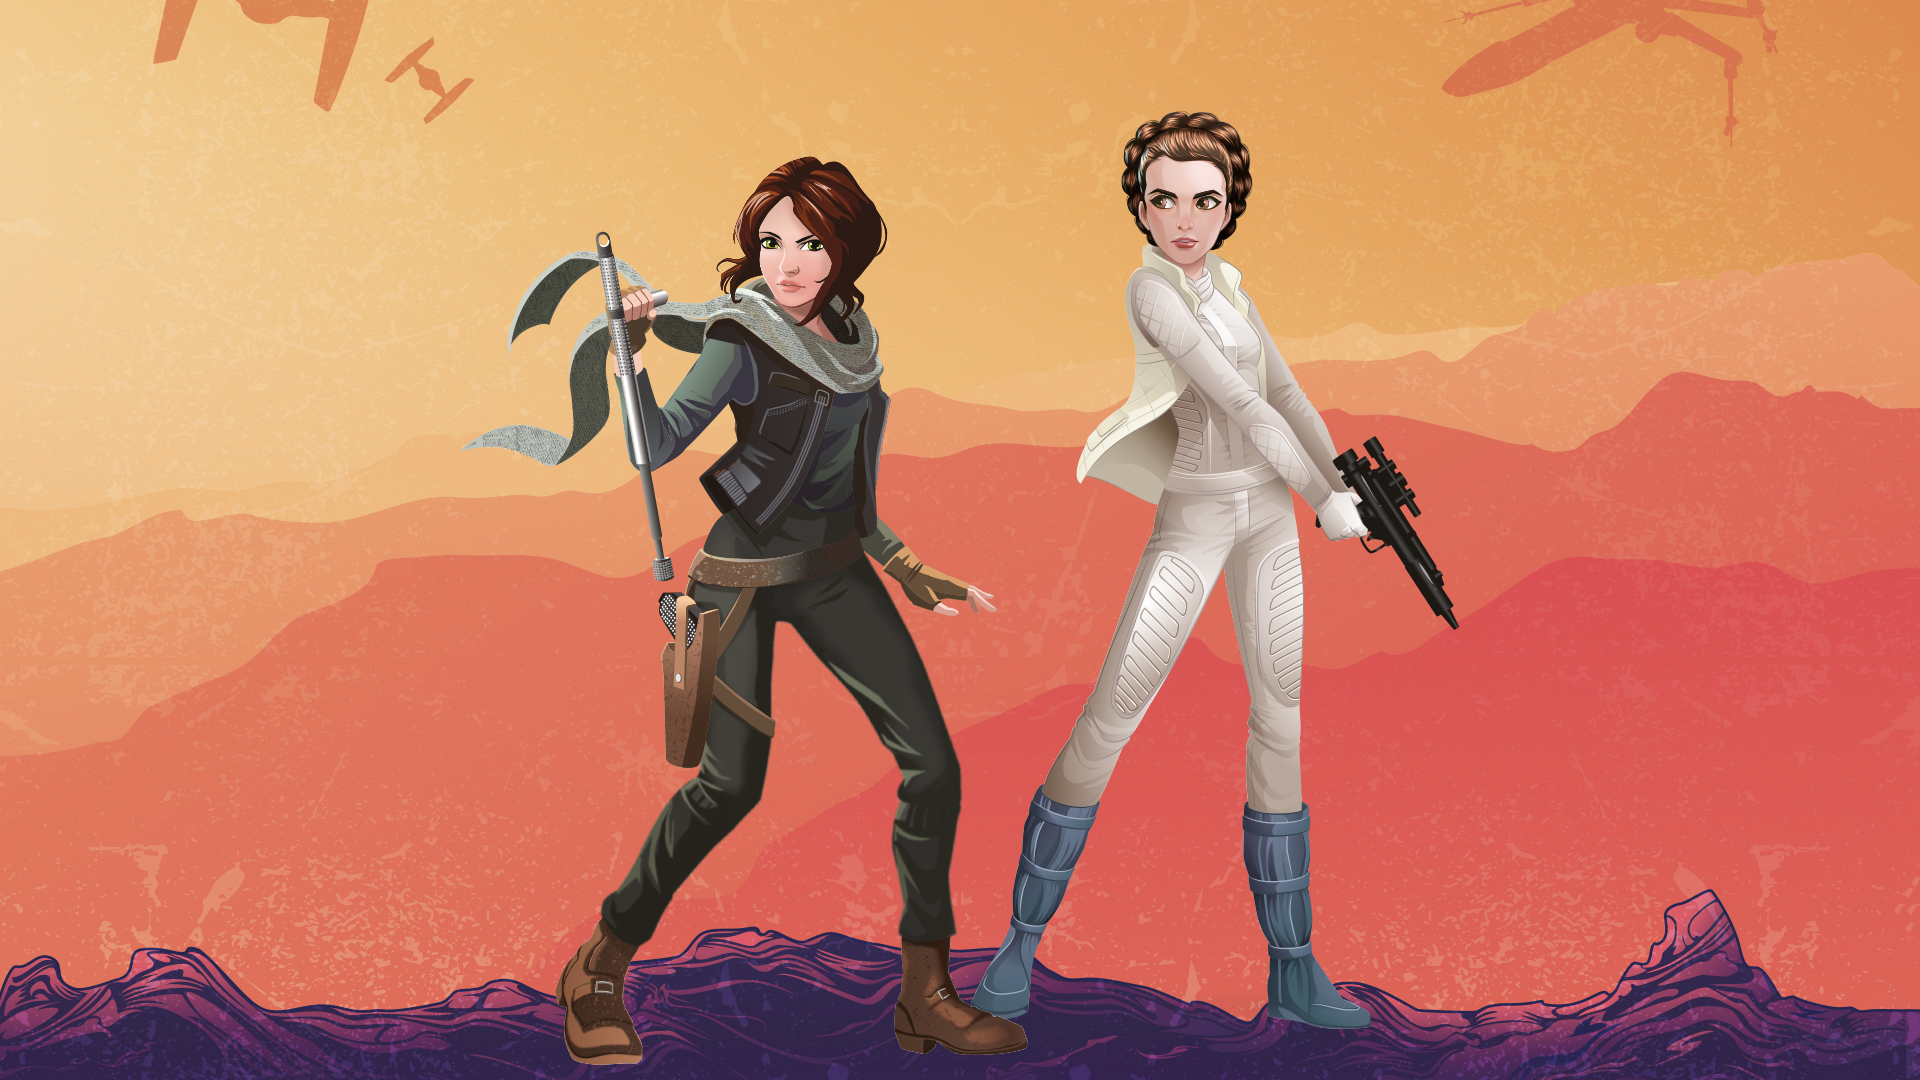 Jyn Erso And Princess Leia Star Wars Star Wars Forces Of Destiny 1920x1080 Wallpaper Teahub Io